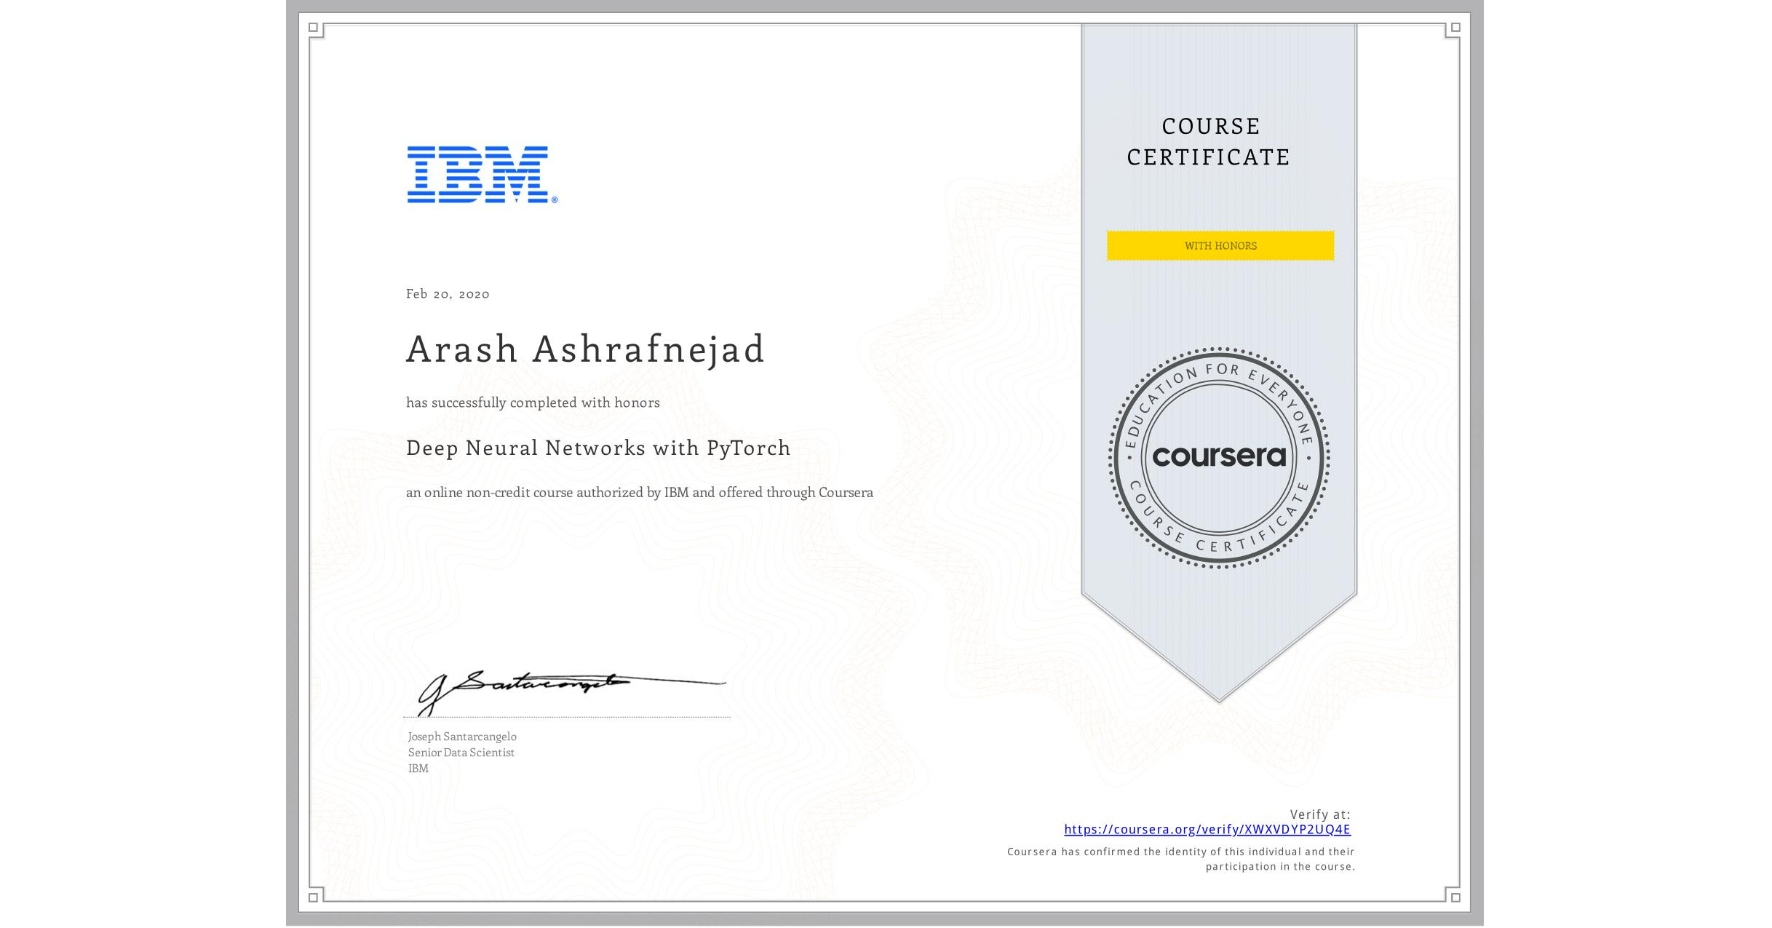 View certificate for Arash Ashrafnejad, Deep Neural Networks with PyTorch, an online non-credit course authorized by IBM and offered through Coursera